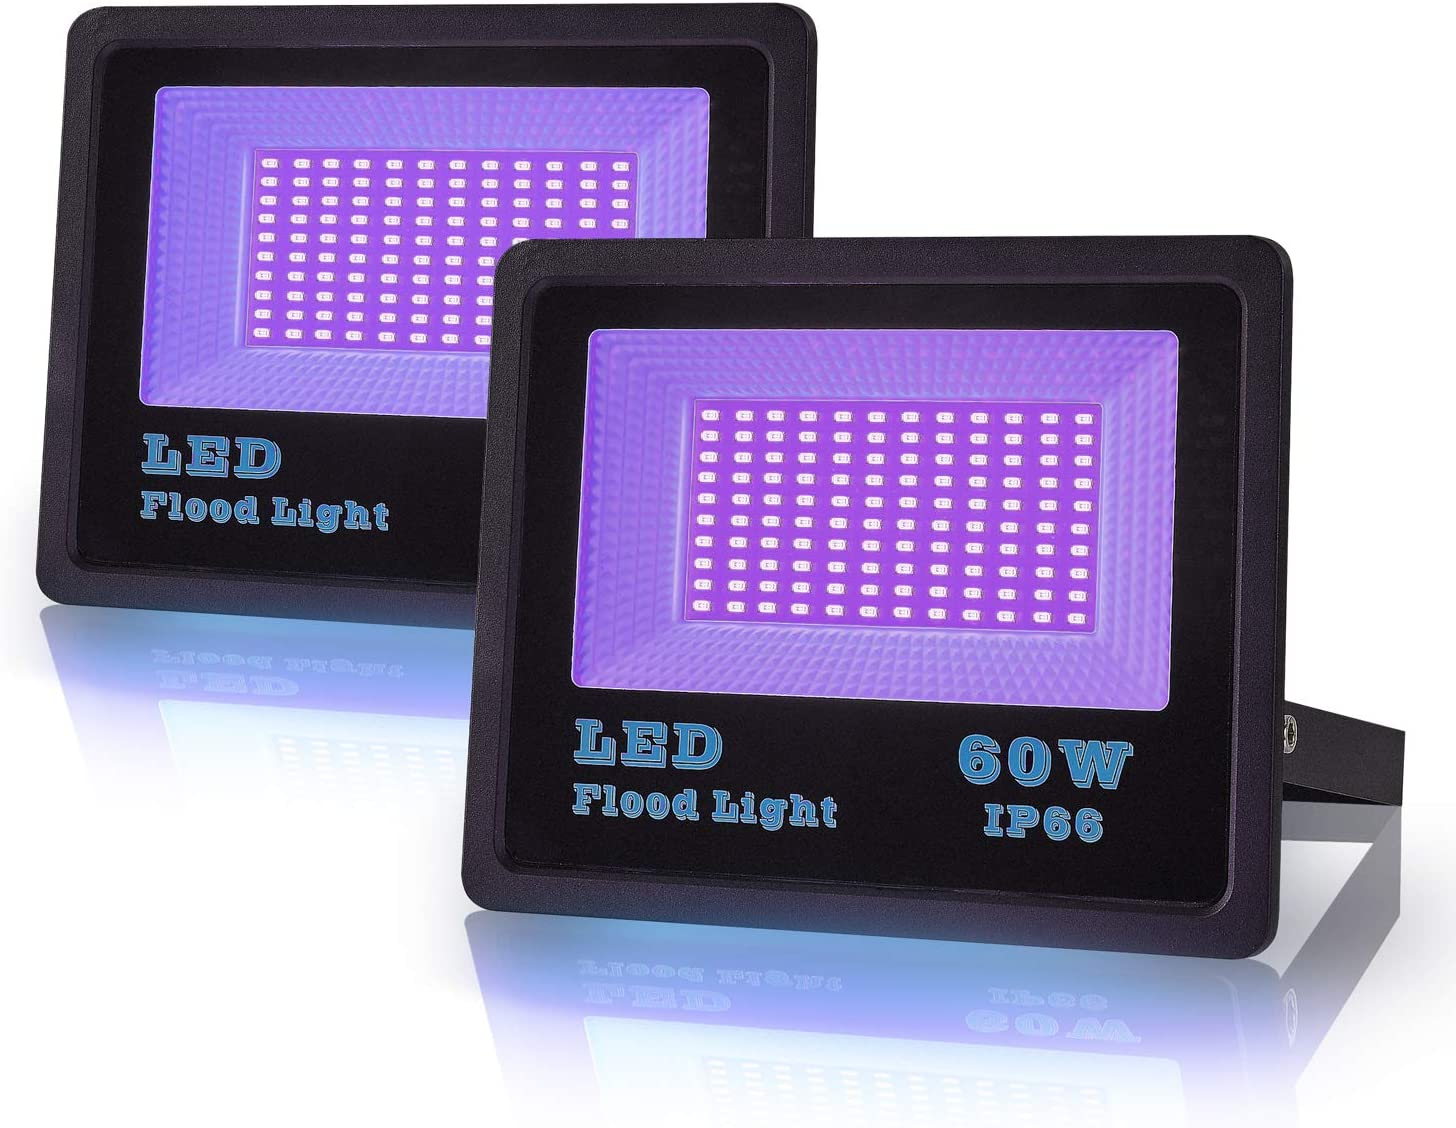 LANFU 2 Pack 60w LED Max 78% OFF Black Neon Light Blacklight for 2021 autumn and winter new Fluorescent